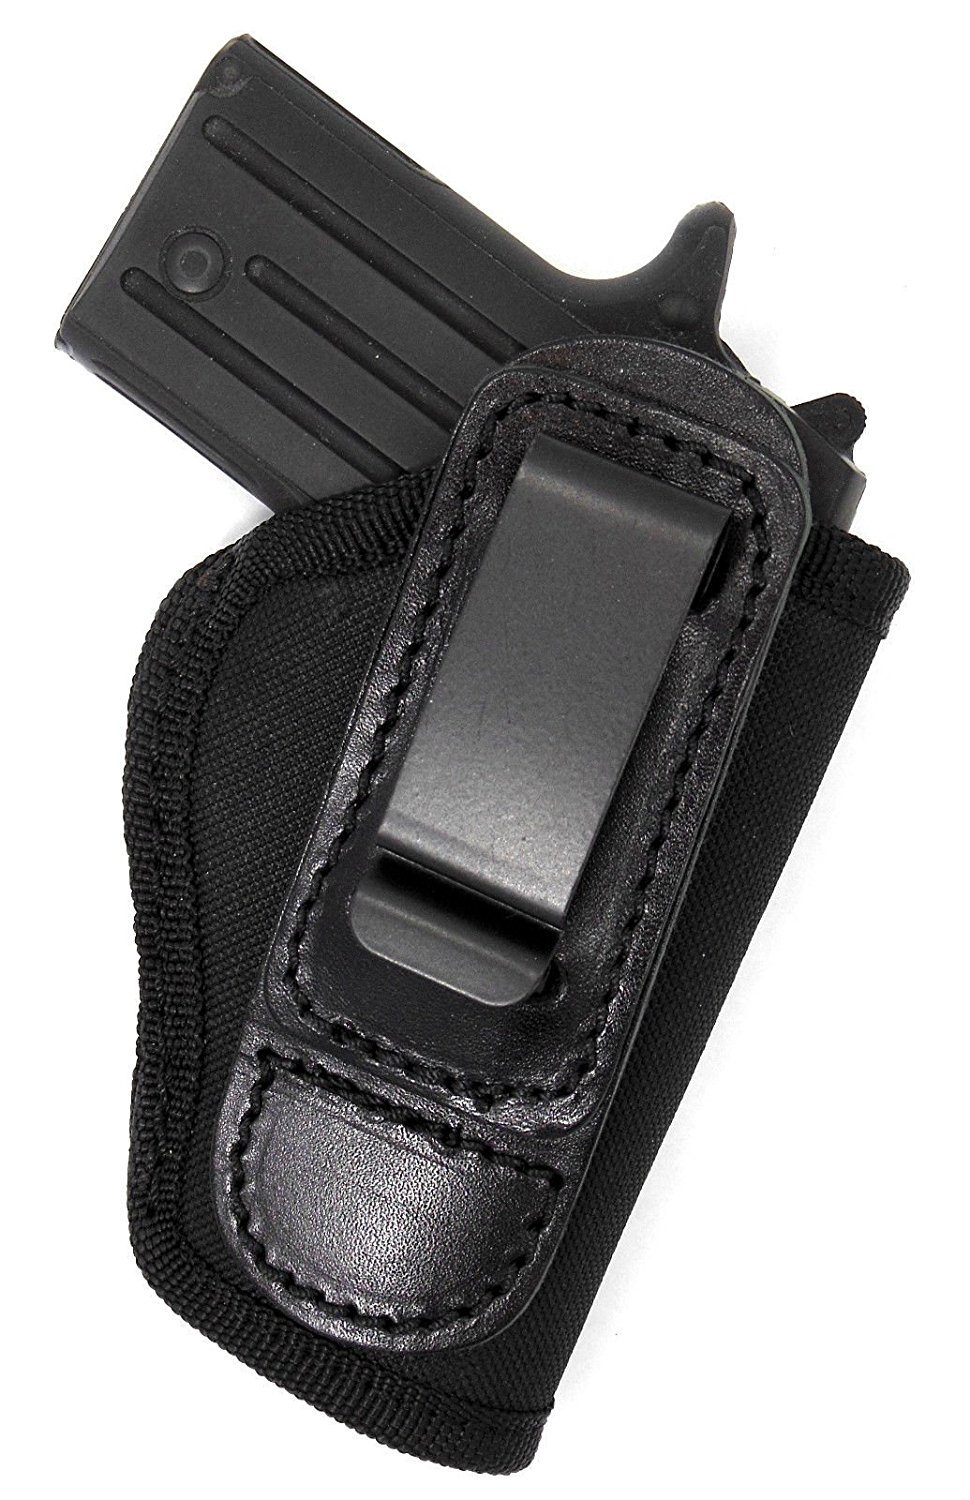 TUCK TUCKABLE INSIDE THE PANTS ITP IWB ITW HOLSTER FOR RUGER LCP 380 & KEL-TEC P-3AT P-32, S&W M&P BODYGUARD 380 NO LASER, TAURUS TCP 738 380 732 32, KAHR P380 CW380, SIG P238 380,DIAMONDBACK DB380